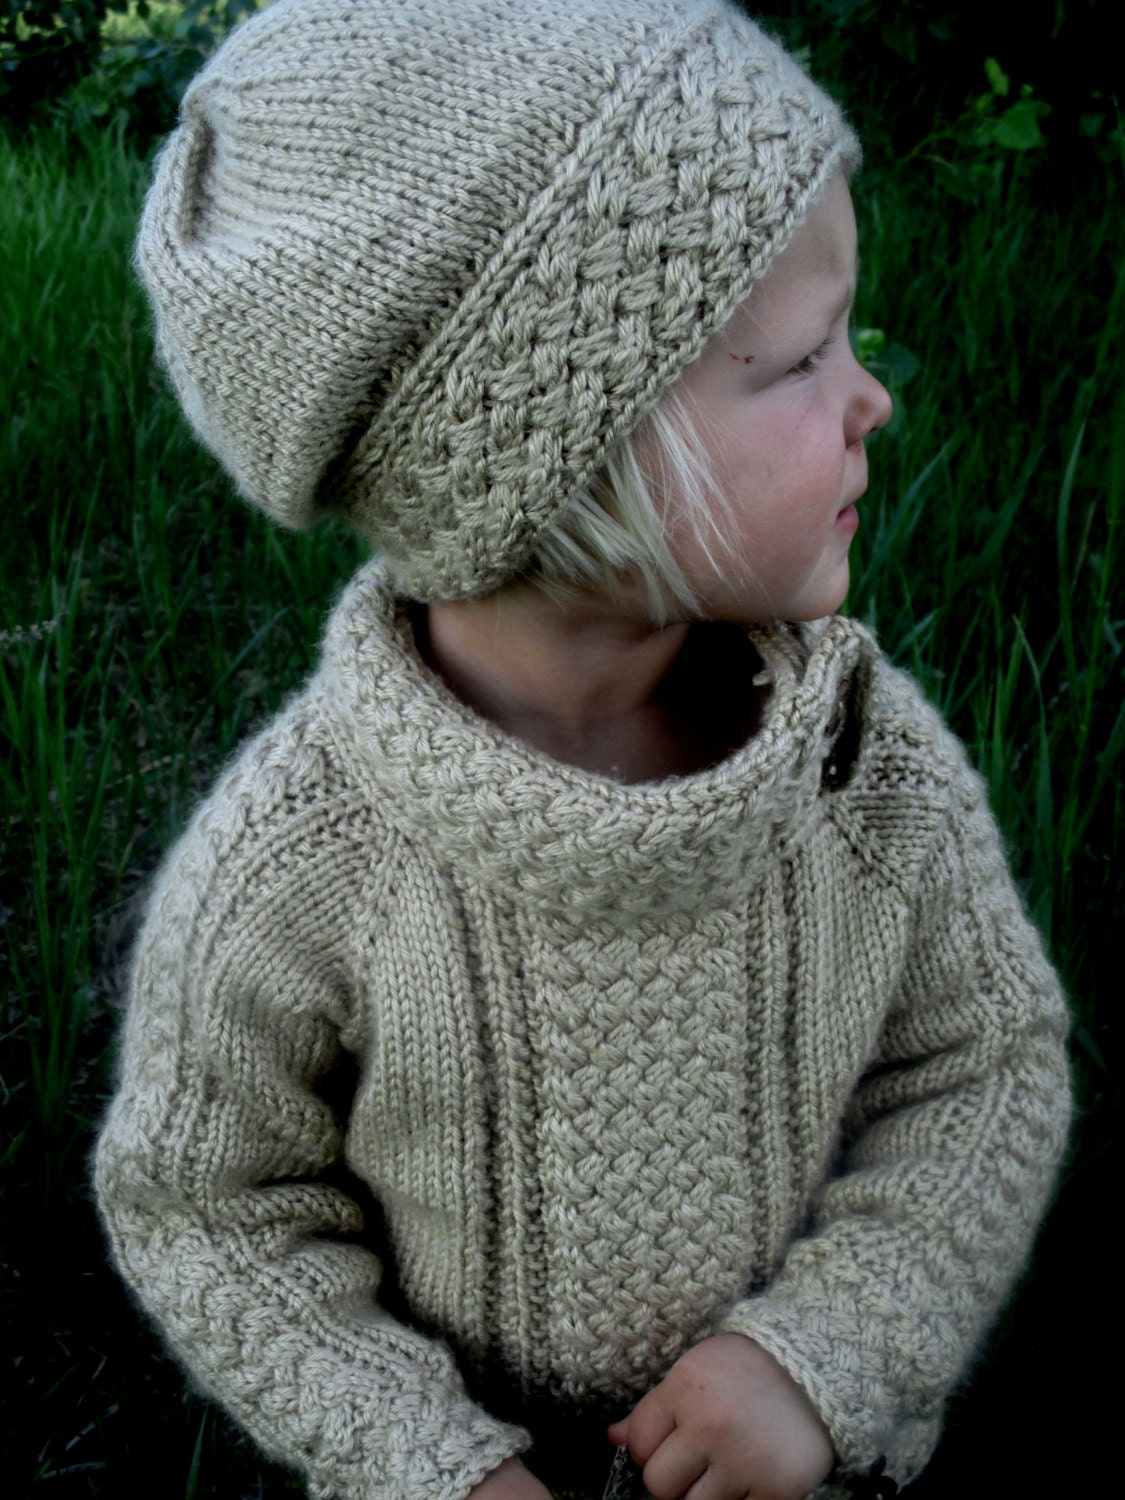 Knitting Patterns Sweater : Knitting pattern pdf sweater knit baby